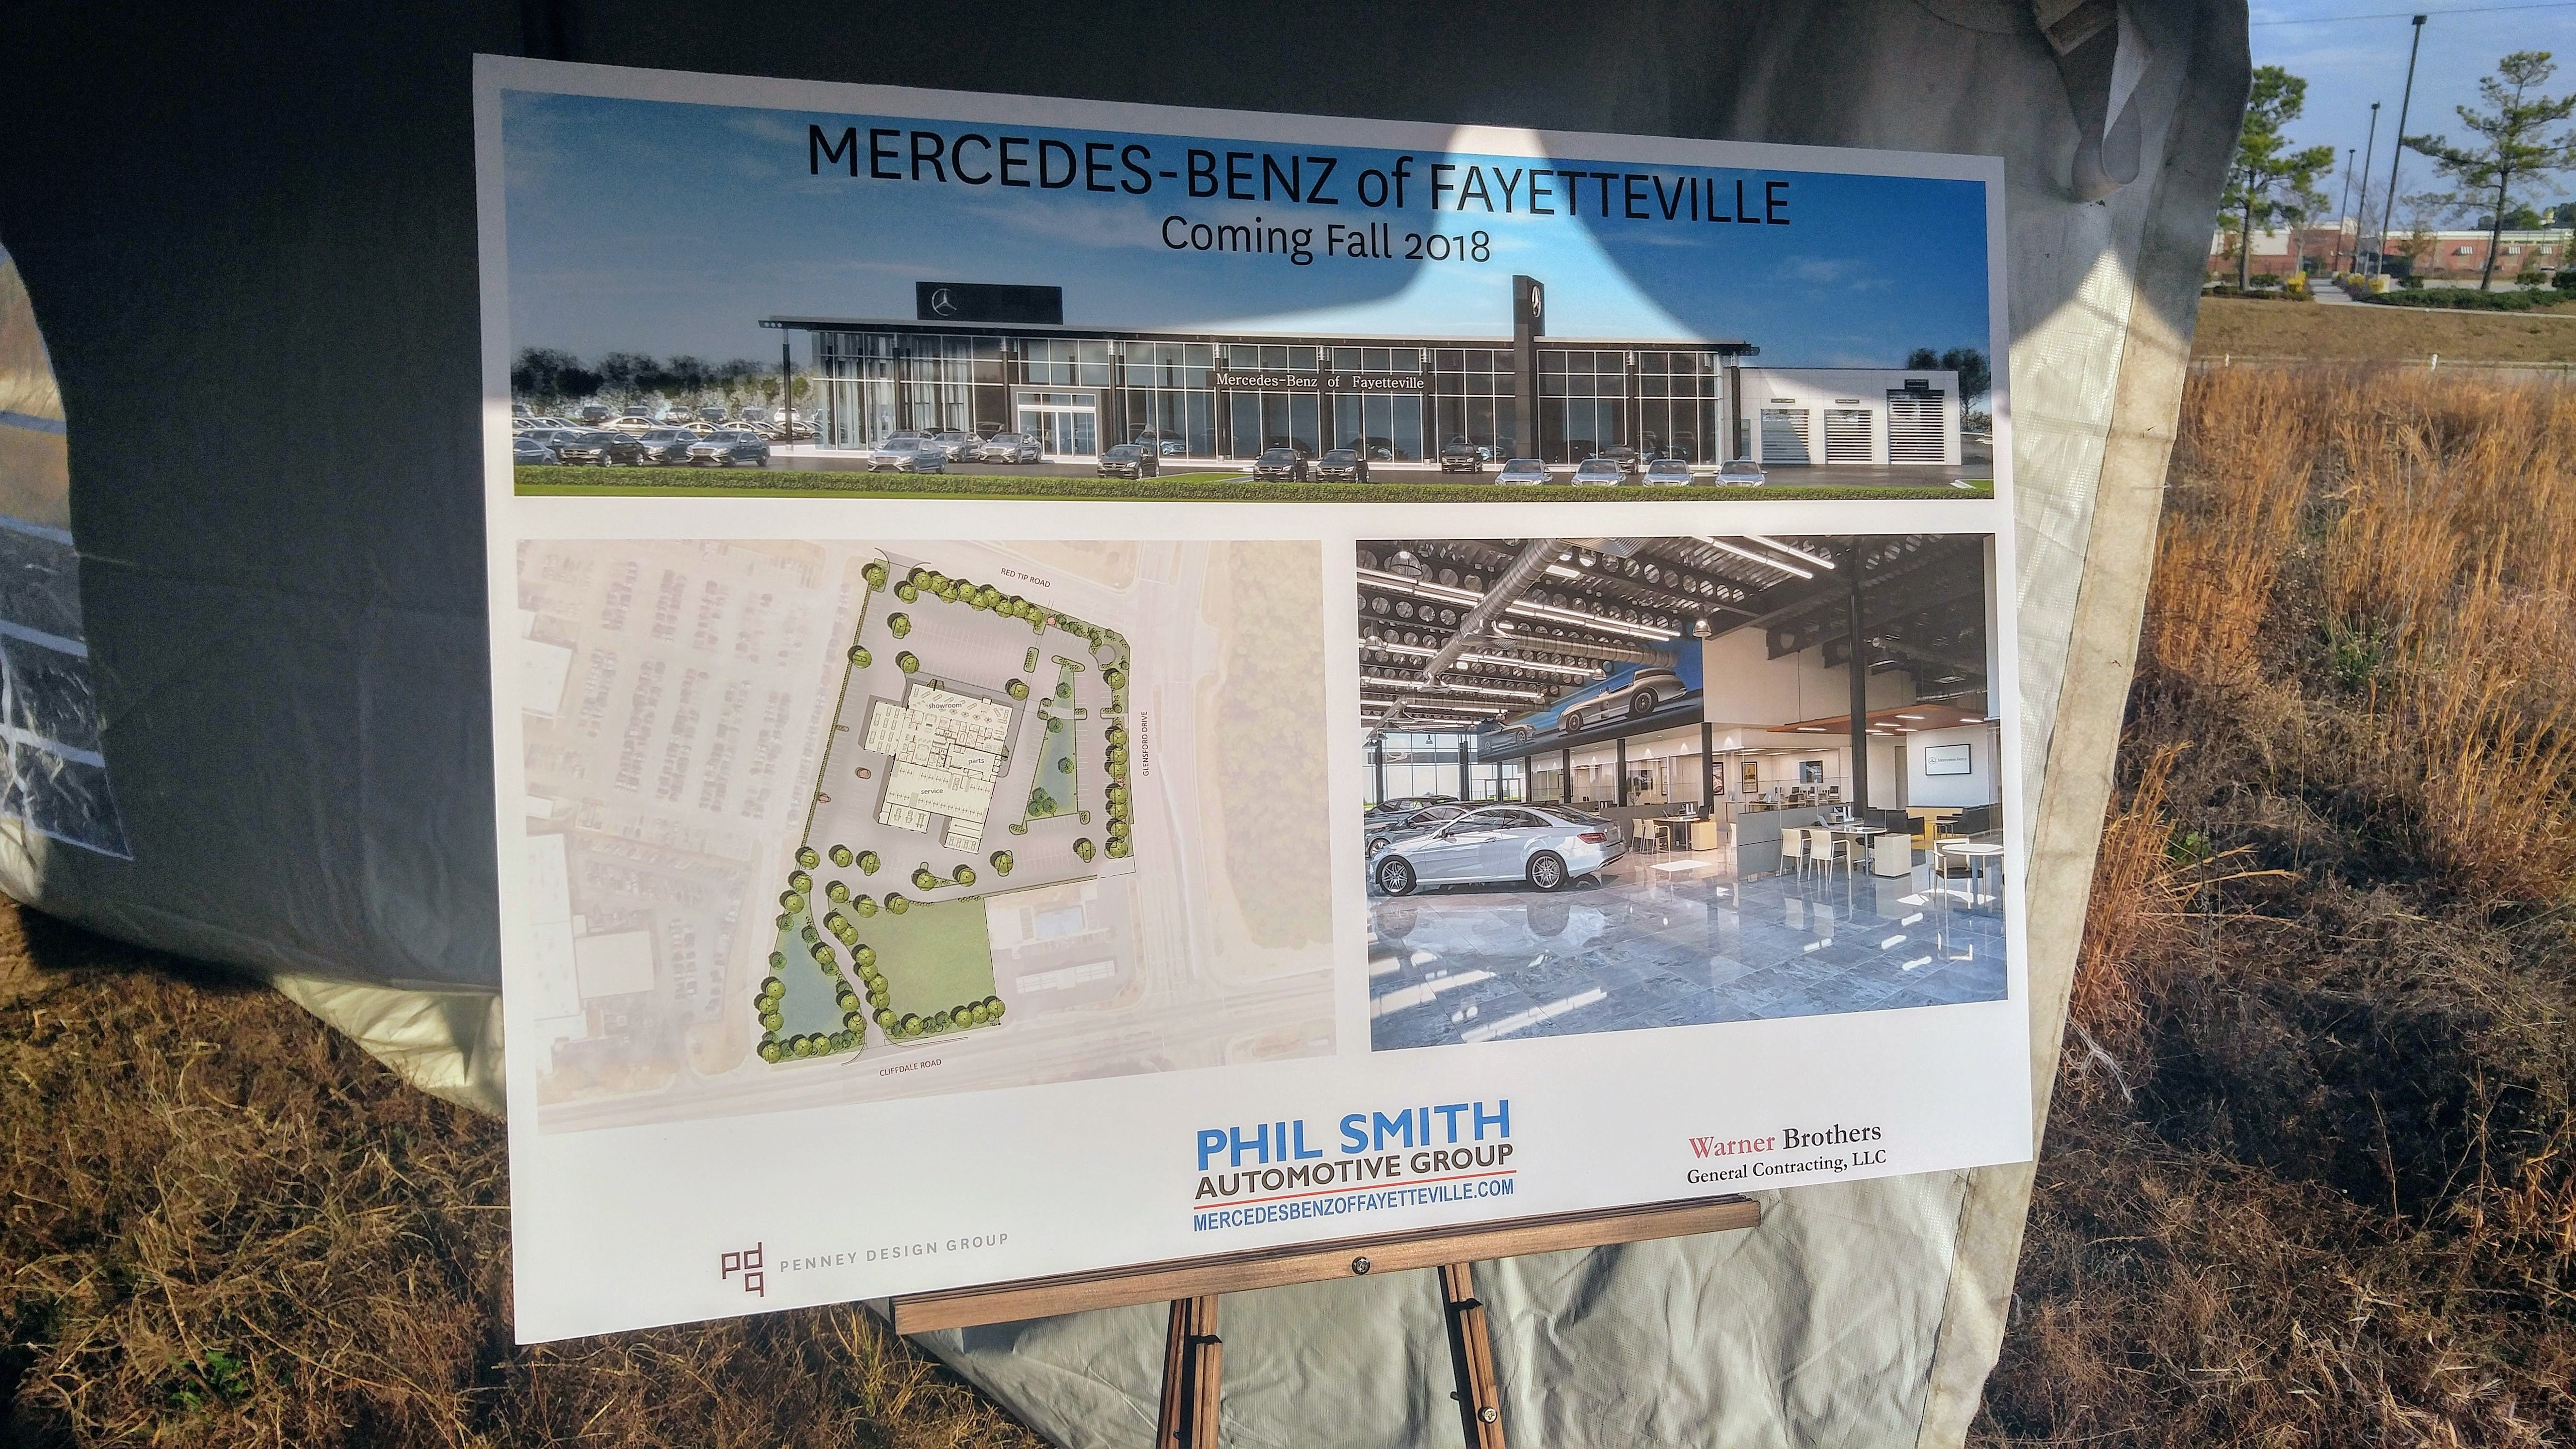 Congrats To Mercedes Benz Of Fayetteville On The Groundbreaking Of Your New  Location Opening In